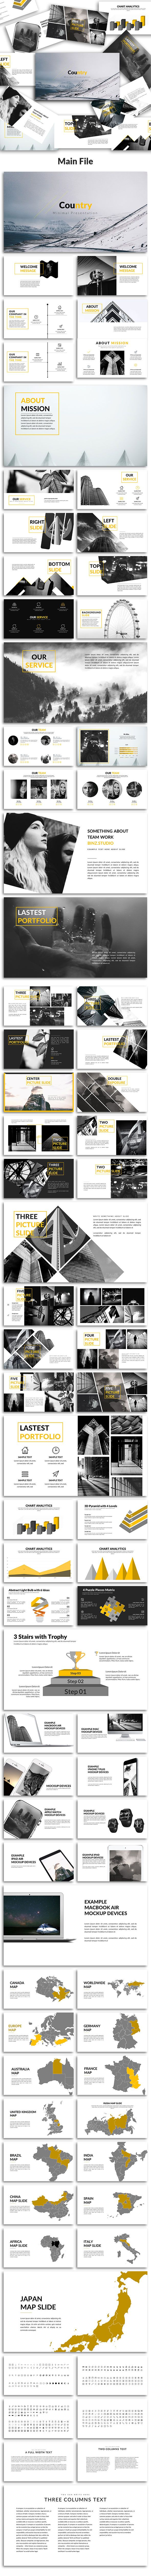 Country - Presentation PowerPoint Template - #Creative #PowerPoint #Templates Download here: https://graphicriver.net/item/country-presentation-powerpoint-template/19496183?ref=alena994